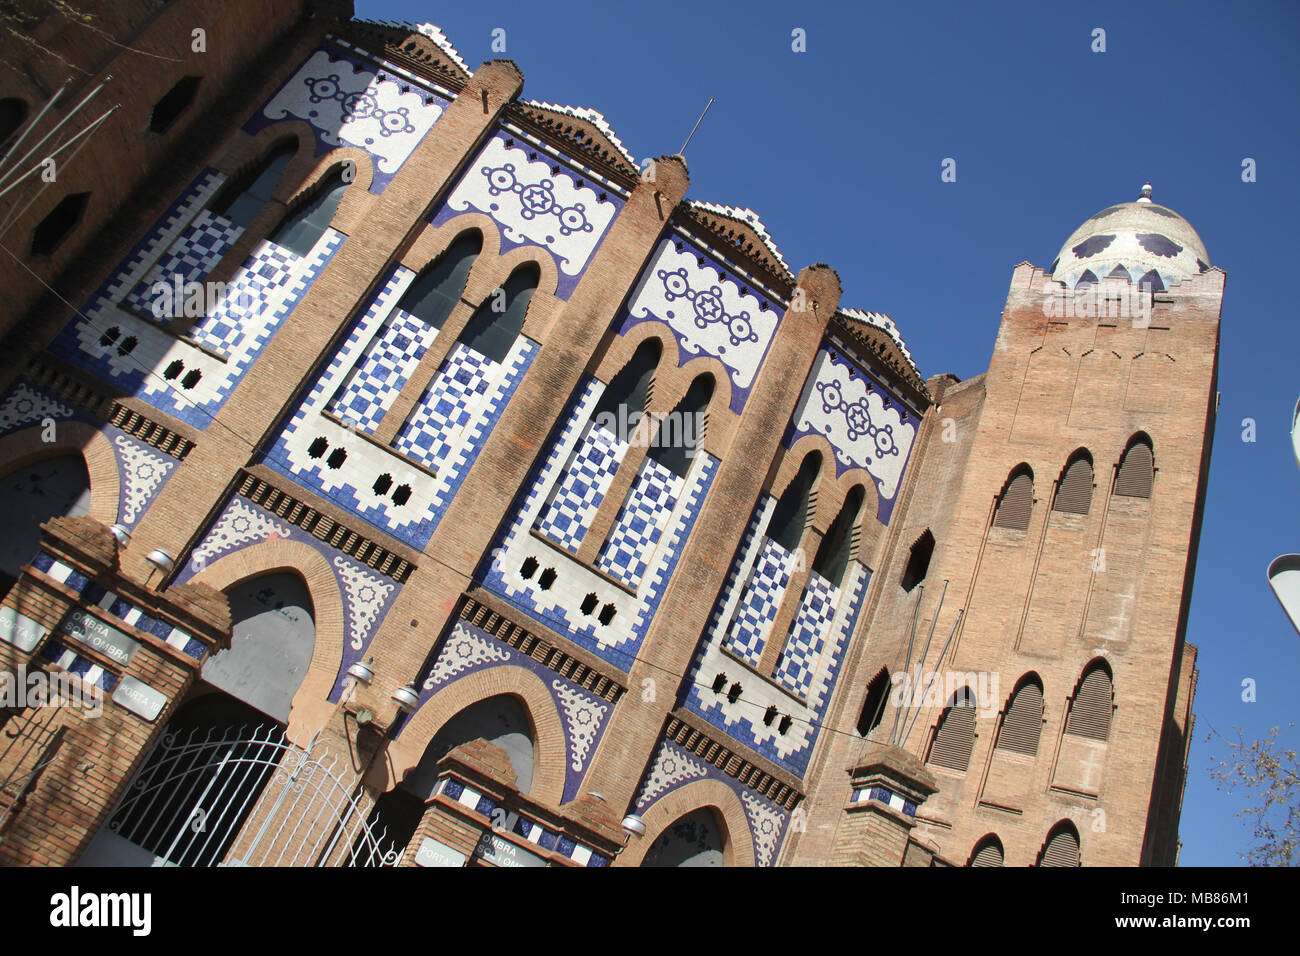 Barcelona, Spain -  31st March 2018. Outside facade of the La Monumental. This was the last bullfighting arena in commercial operation in Catalonia following bullfighting banning law on 28 July 2010. General view of Barcelona, Spain. @ David Mbiyu/Alamy Live News - Stock Image